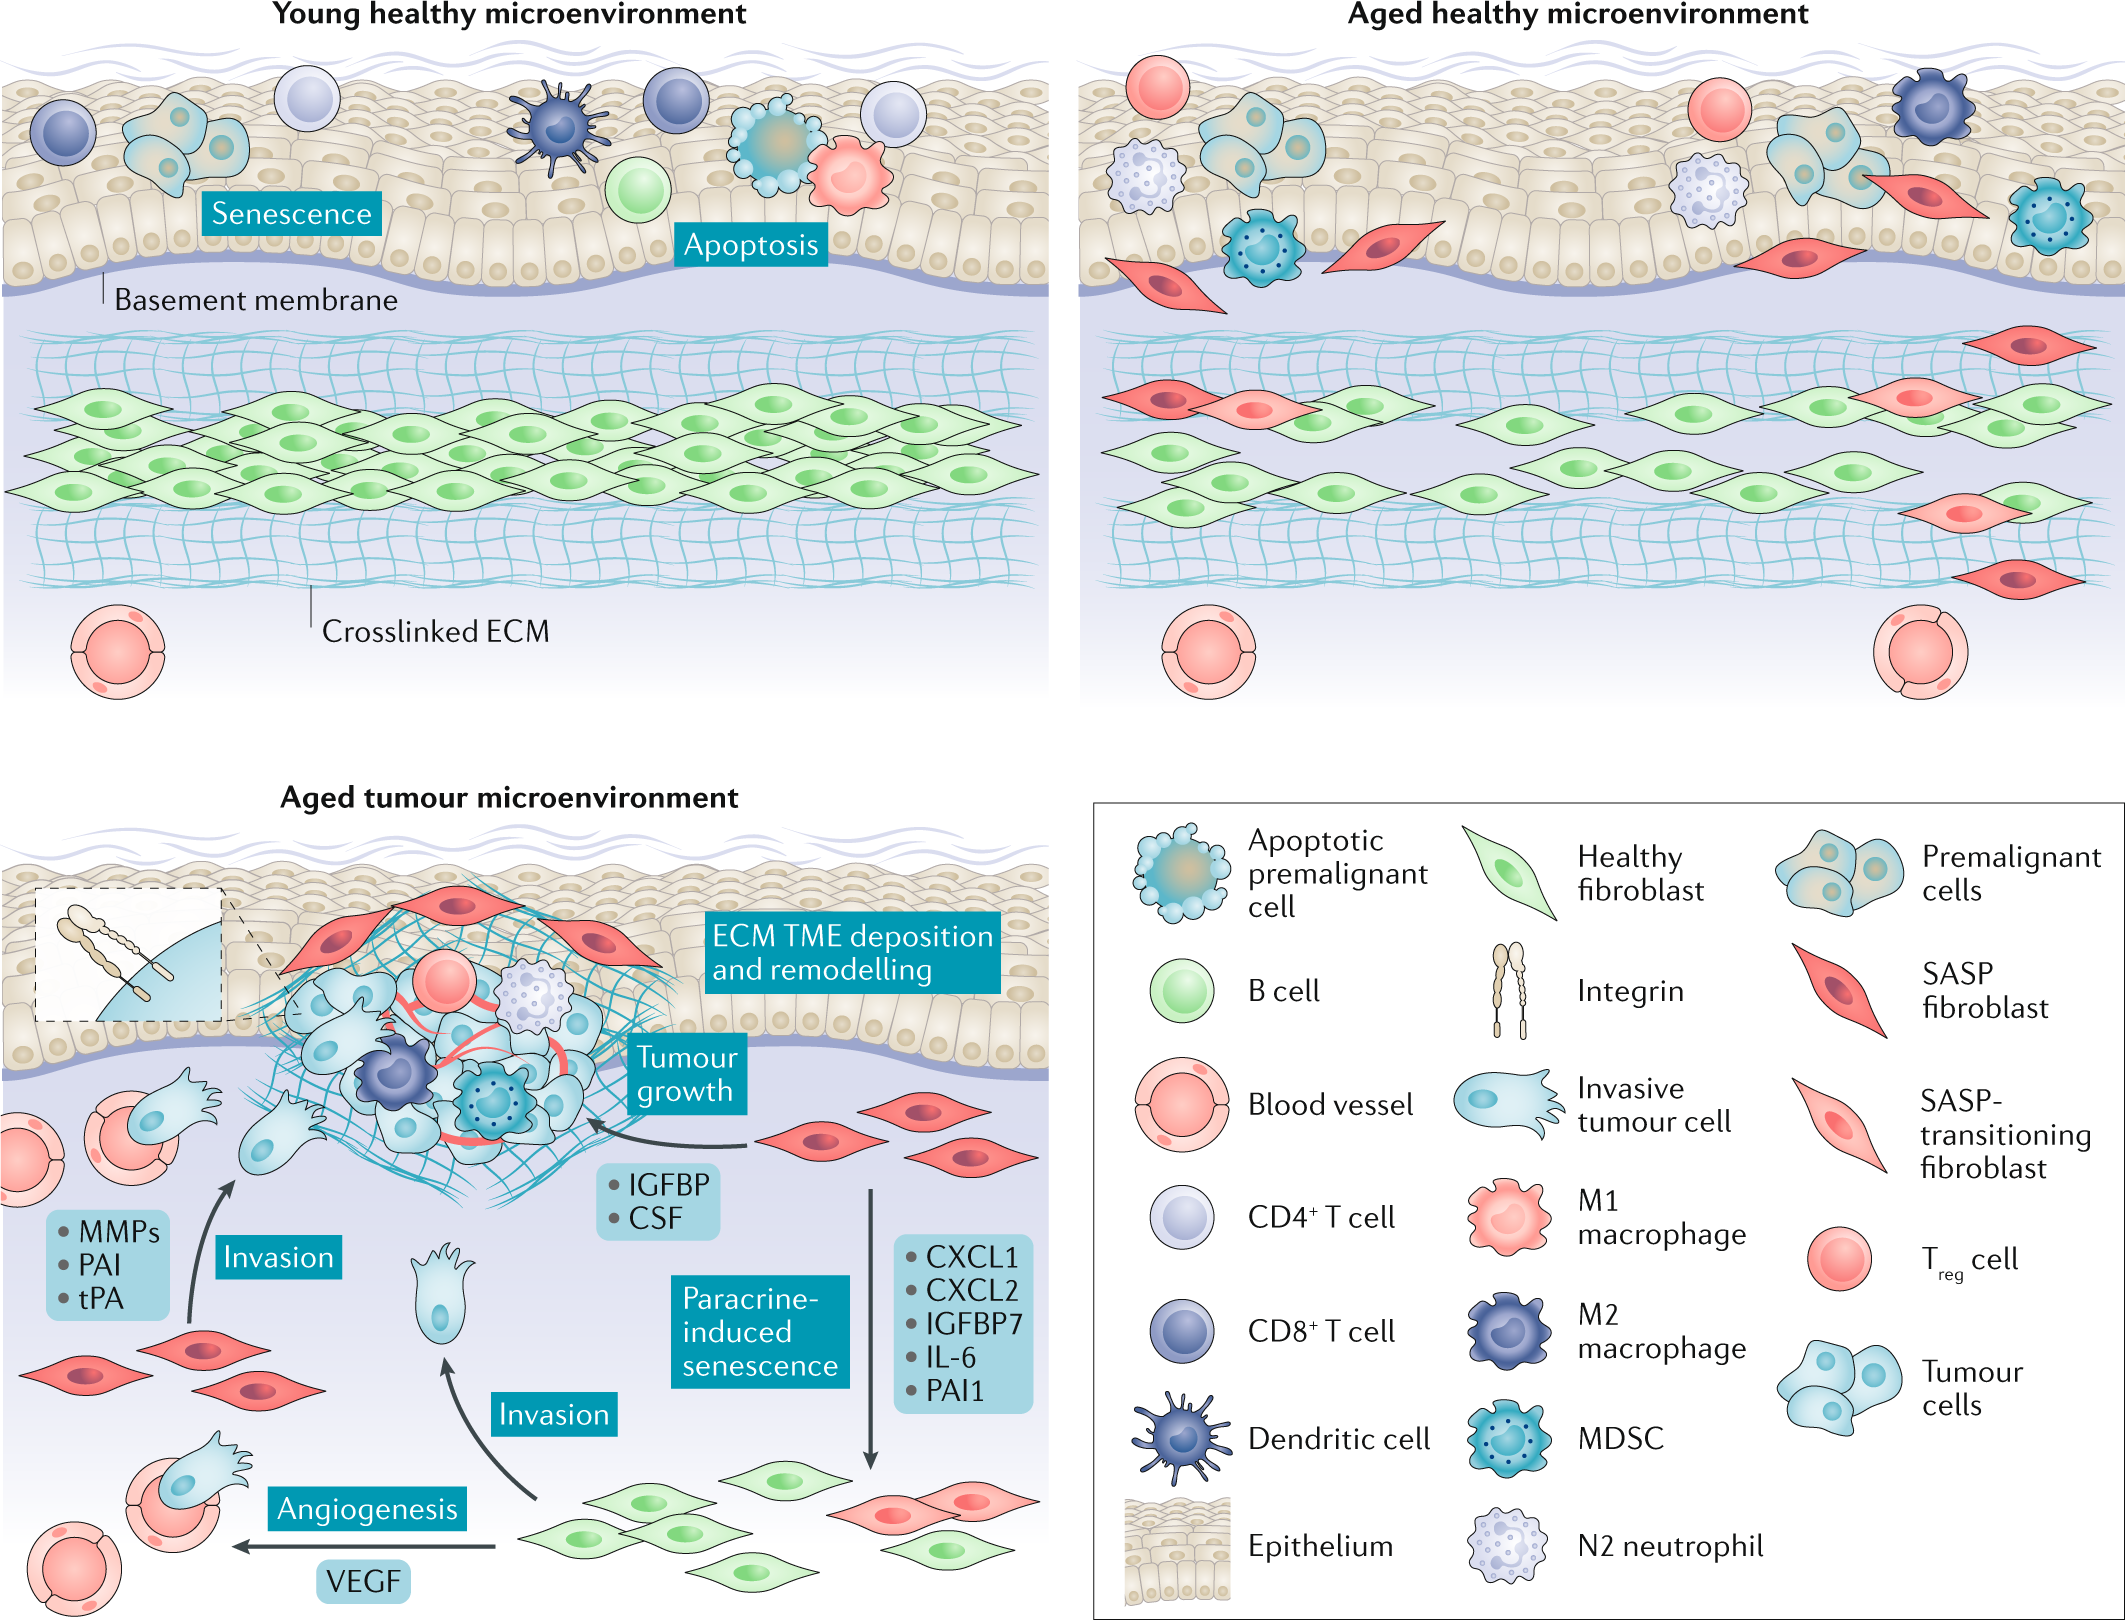 How the ageing microenvironment influences tumour progression